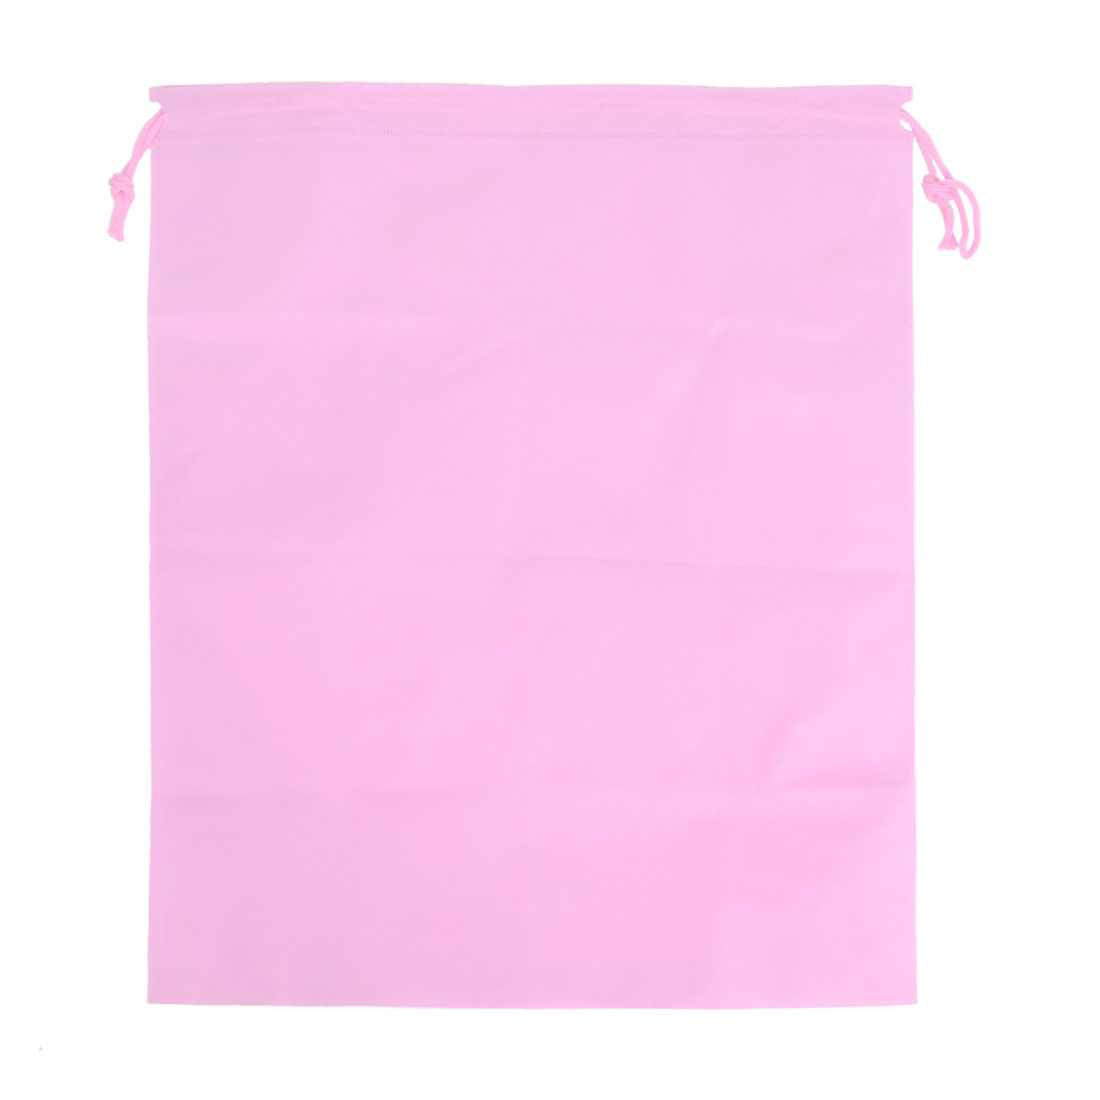 Foldable Clothes Shoe Dust Cover Storage Drawstring Bags 55 x 45cm Pink